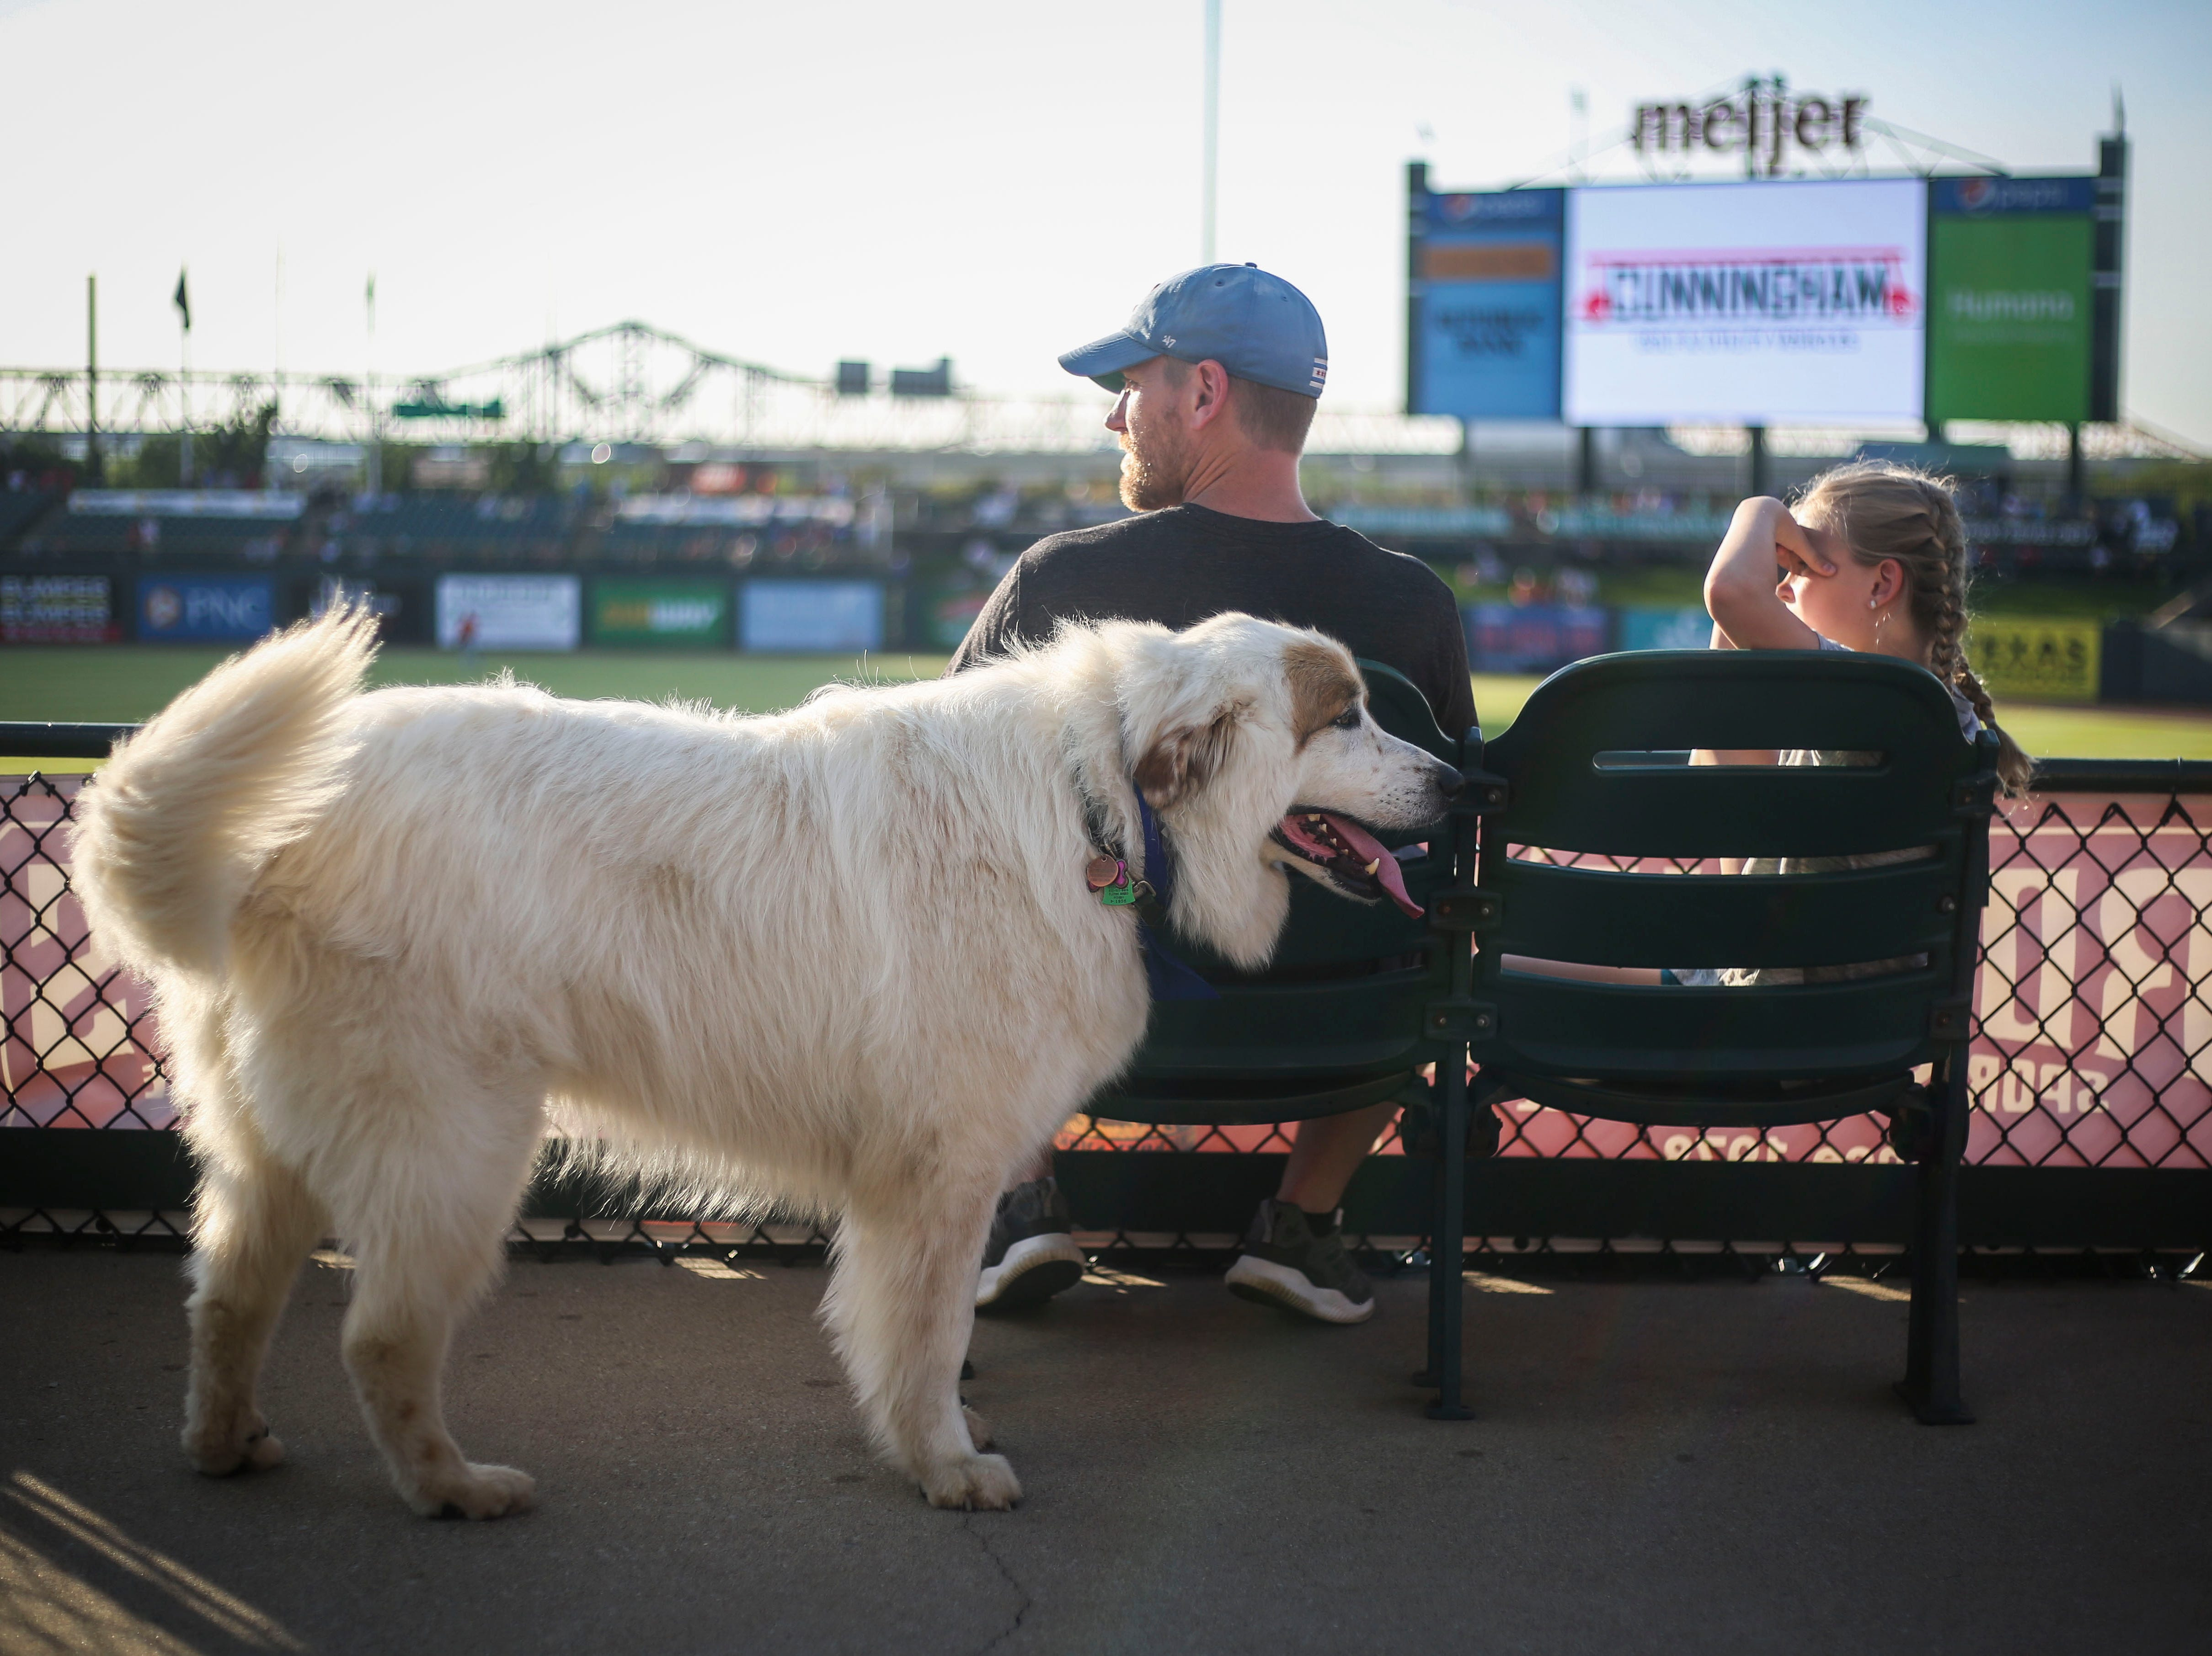 Dottie the great pyrenees wags her tail as Daniel Williams and Hadley Williams watch the Louisville Bats v. Syracuse Mets game during Dog Day Nights at Louisville Slugger Field in downtown Louisville, Ky. on Tuesday, May 7, 2019.